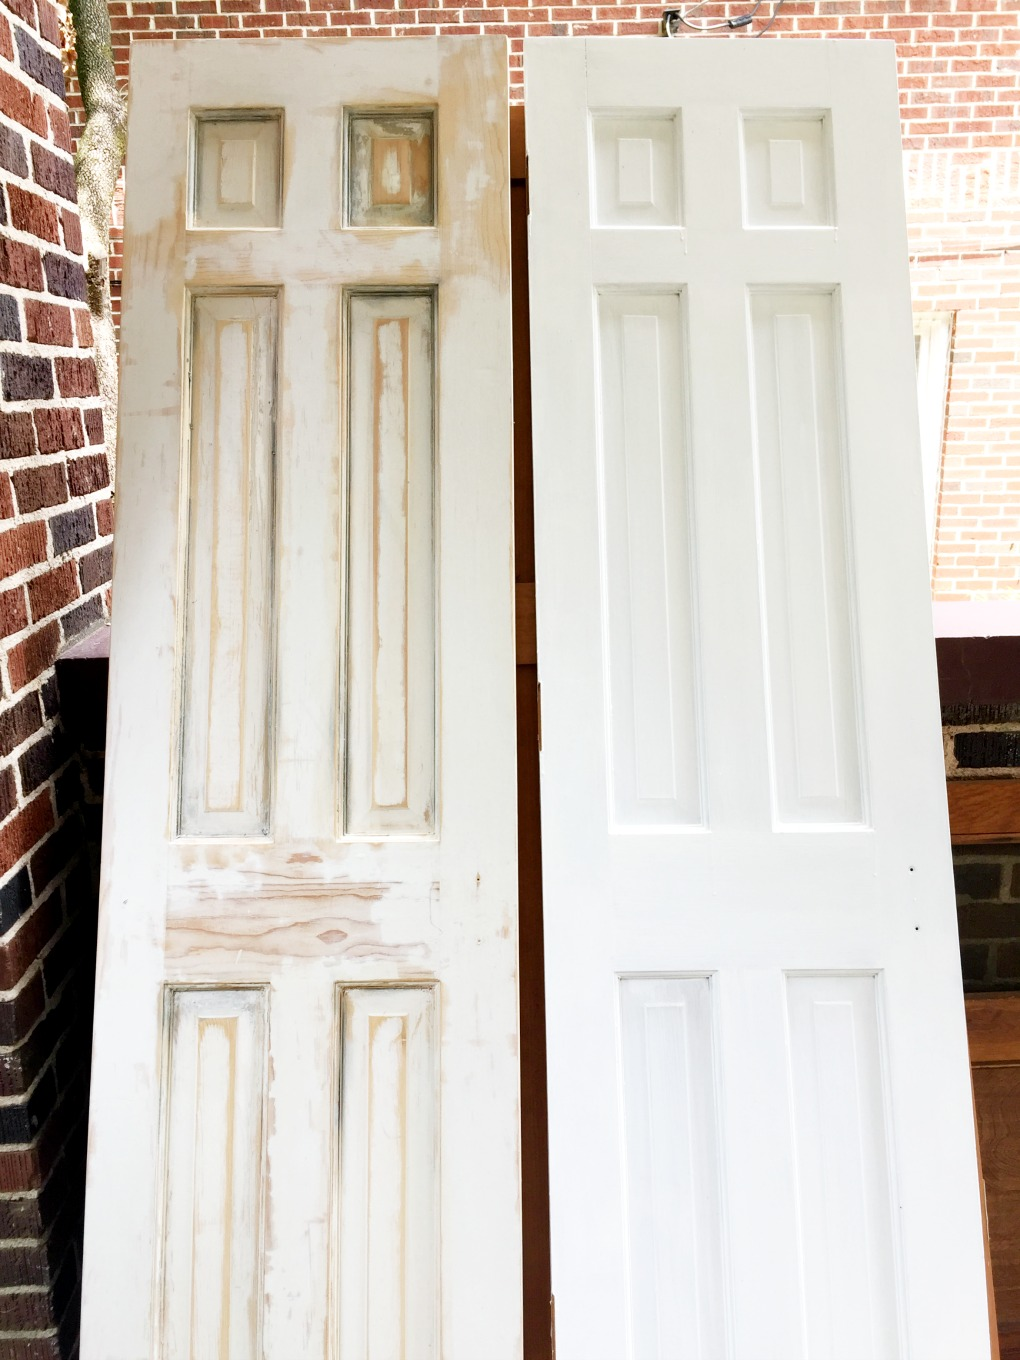 Stripped door on left compared to still-painted door on right - thediybungalow.com